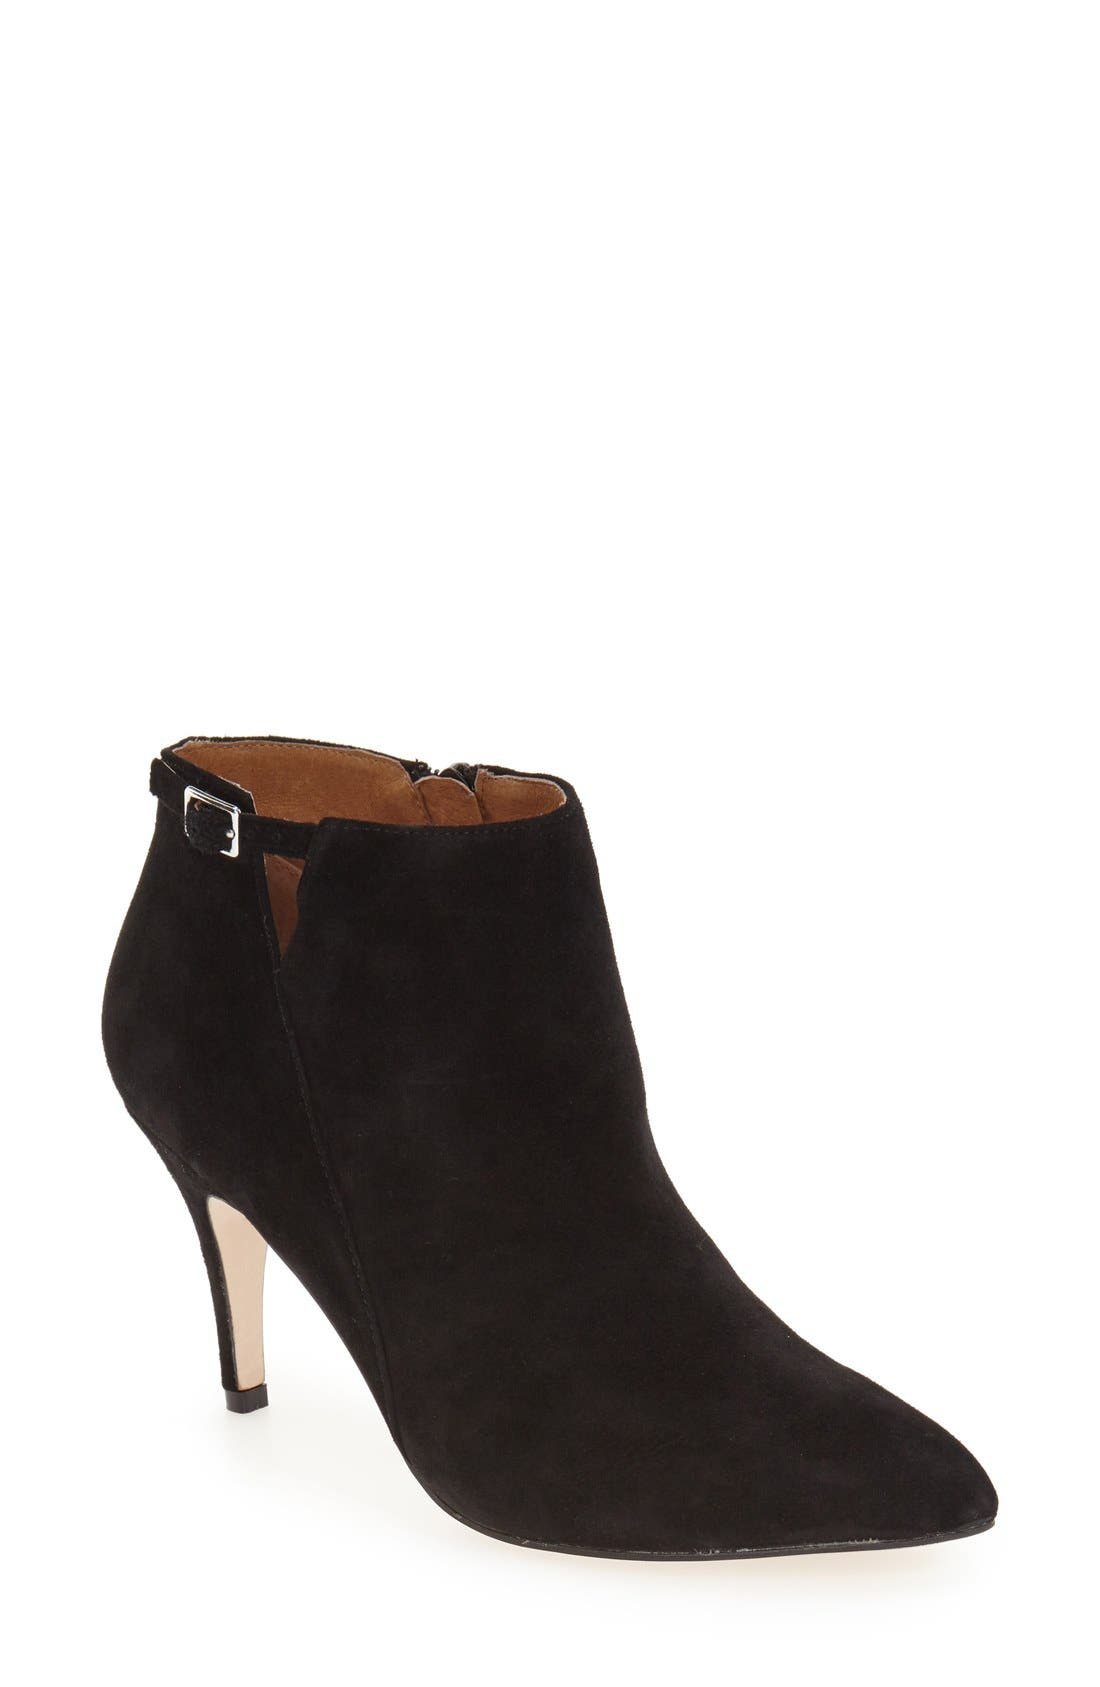 'Roster' Pointy Toe Bootie,                             Main thumbnail 1, color,                             Black Suede